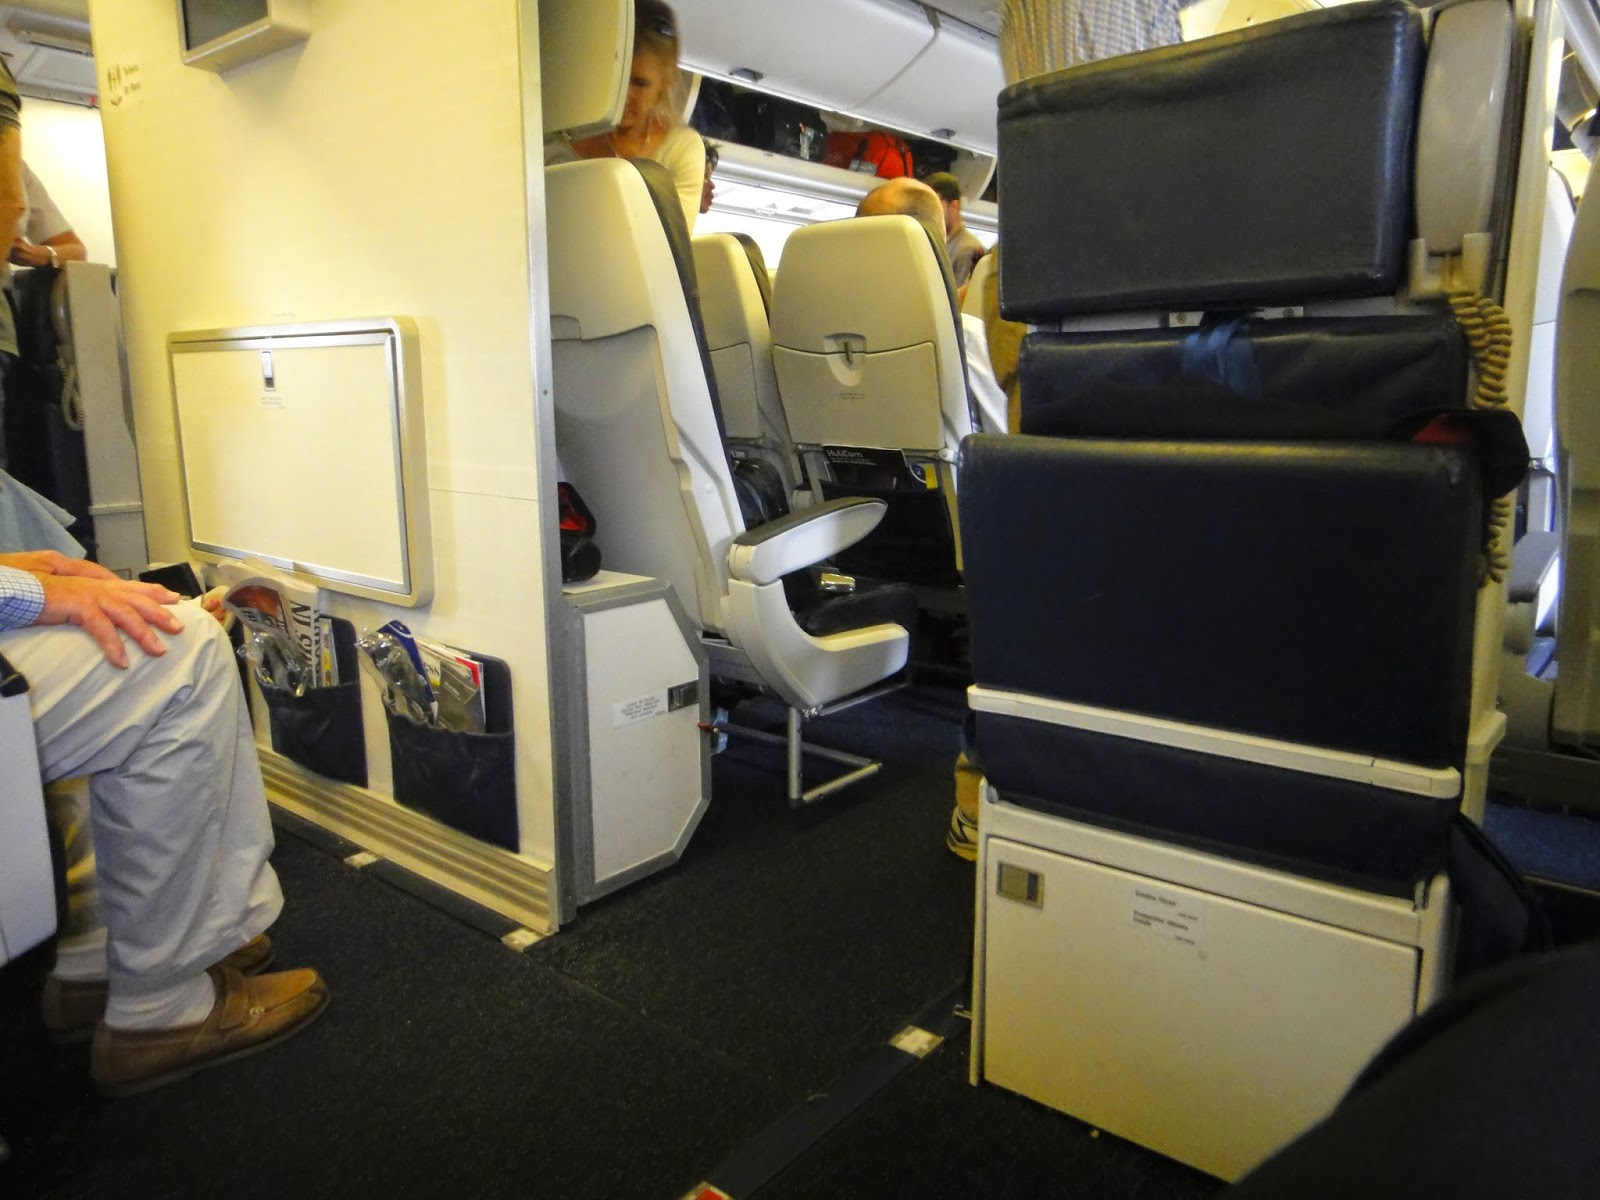 British Airways Economy Class : Istanbul to London on the Boeing 767  #9E892D